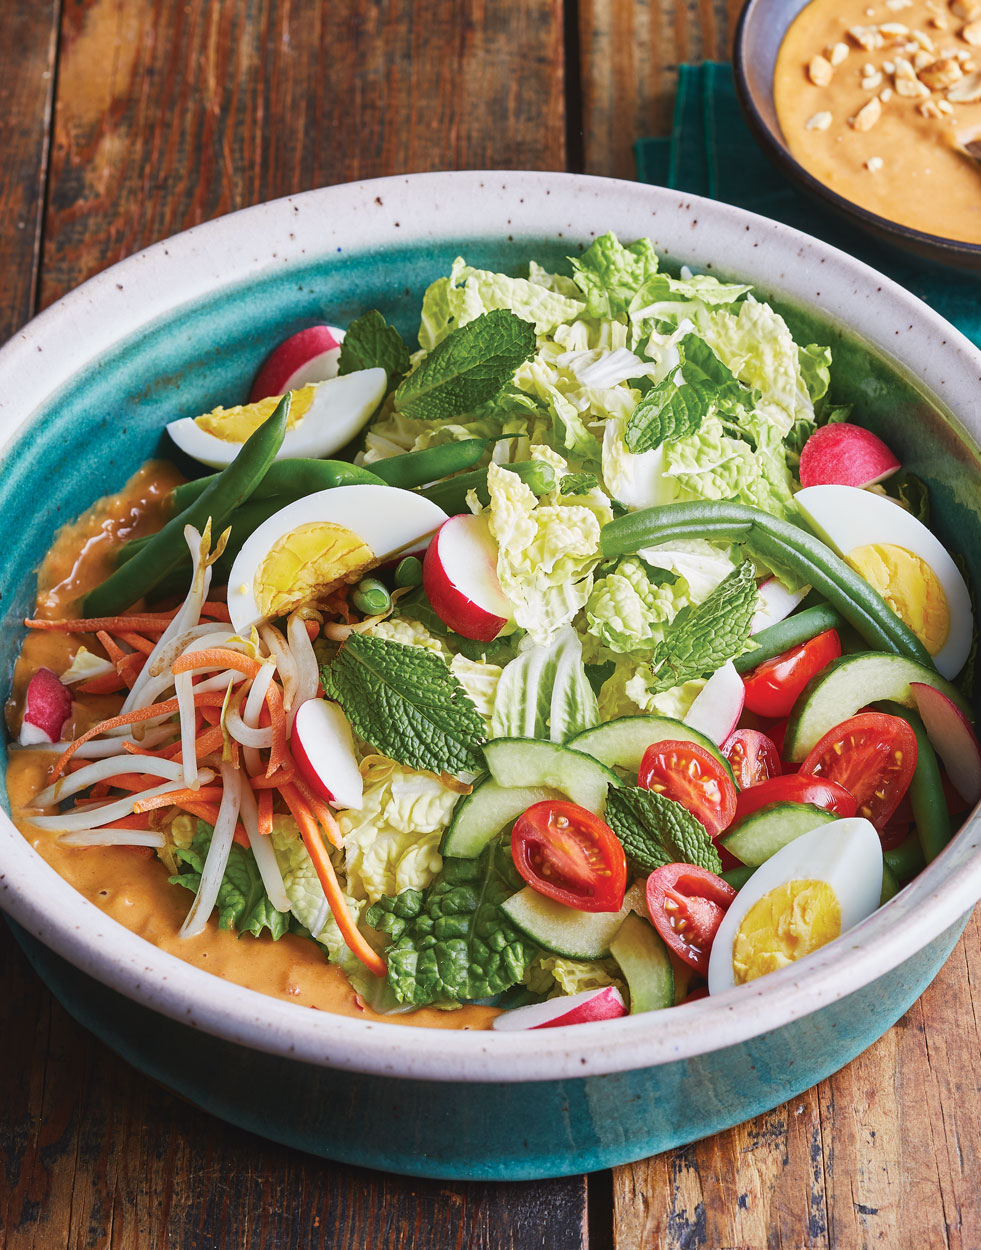 Indonesian Vegetable Salad (Gado Gado) with Peanut Dressing